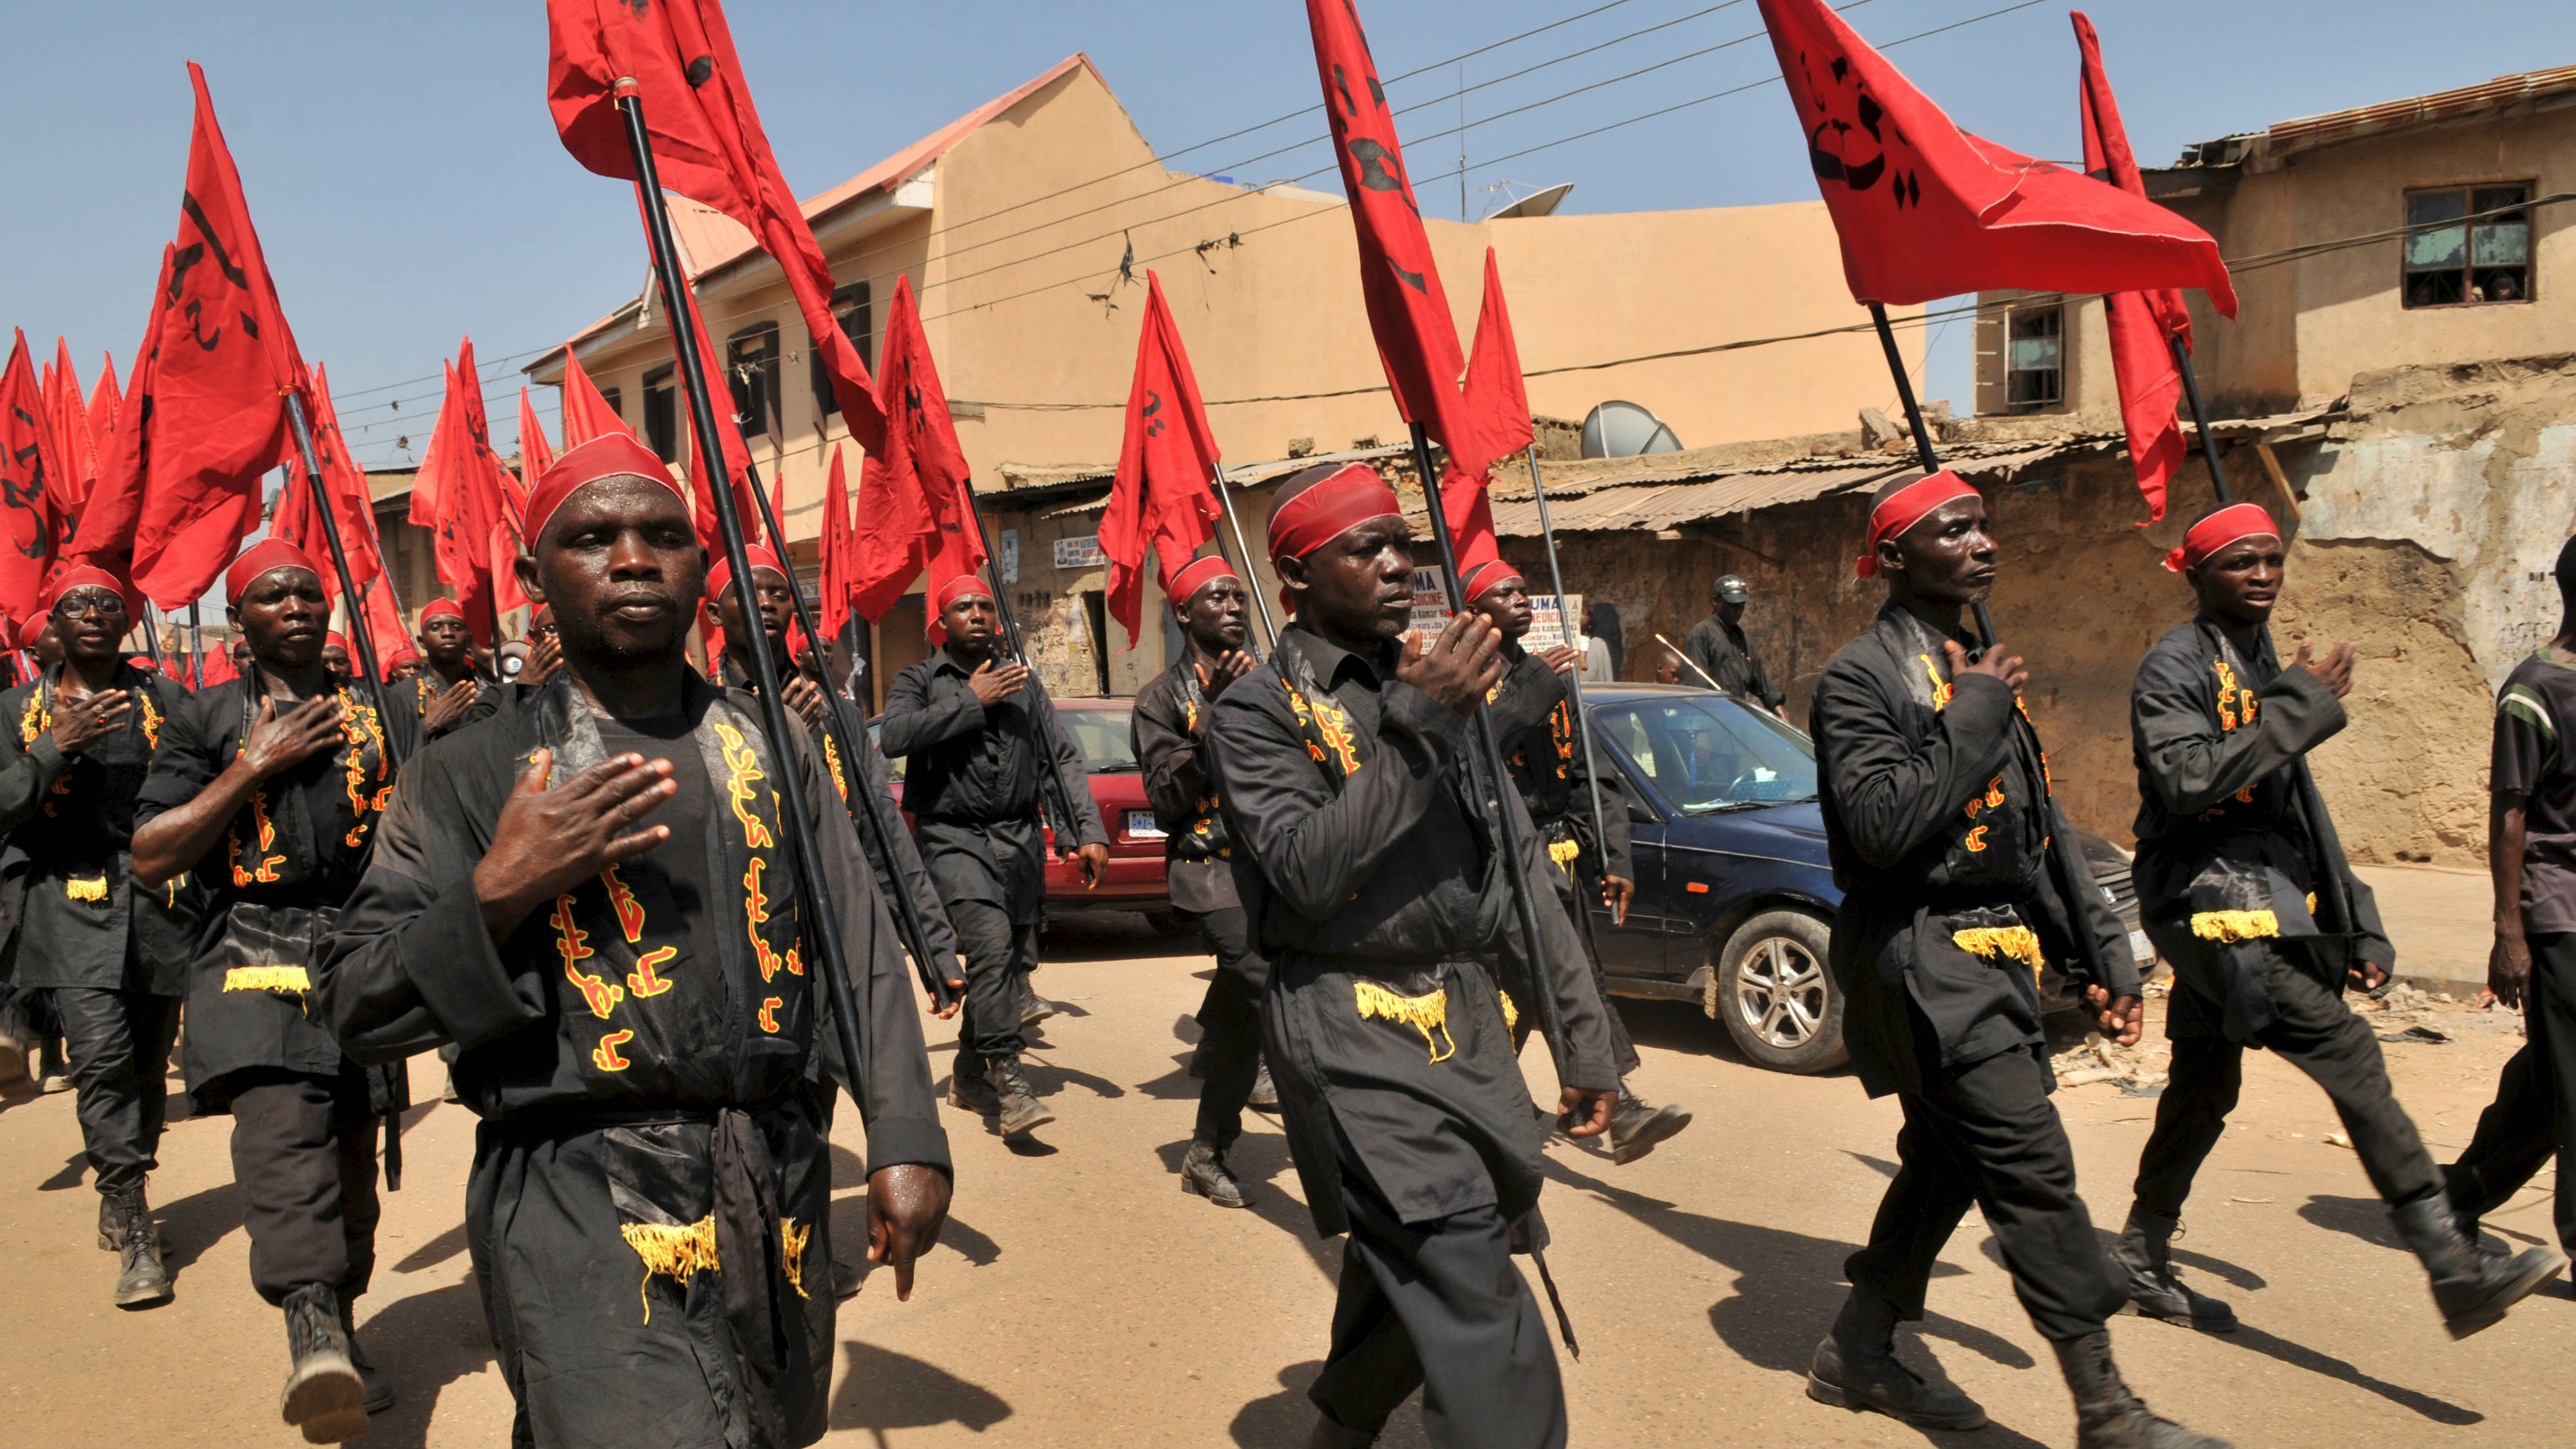 Shi'ite Muslims take part in a rally to commemorate Ashura in Kano, Nigeria October 24, 2015. Ashura, which falls on the 10th day of the Islamic month of Muharram, commemorates the death of Imam Hussein, grandson of Prophet Mohammad, who was killed in the seventh century battle of Kerbala. REUTERS/Stringer